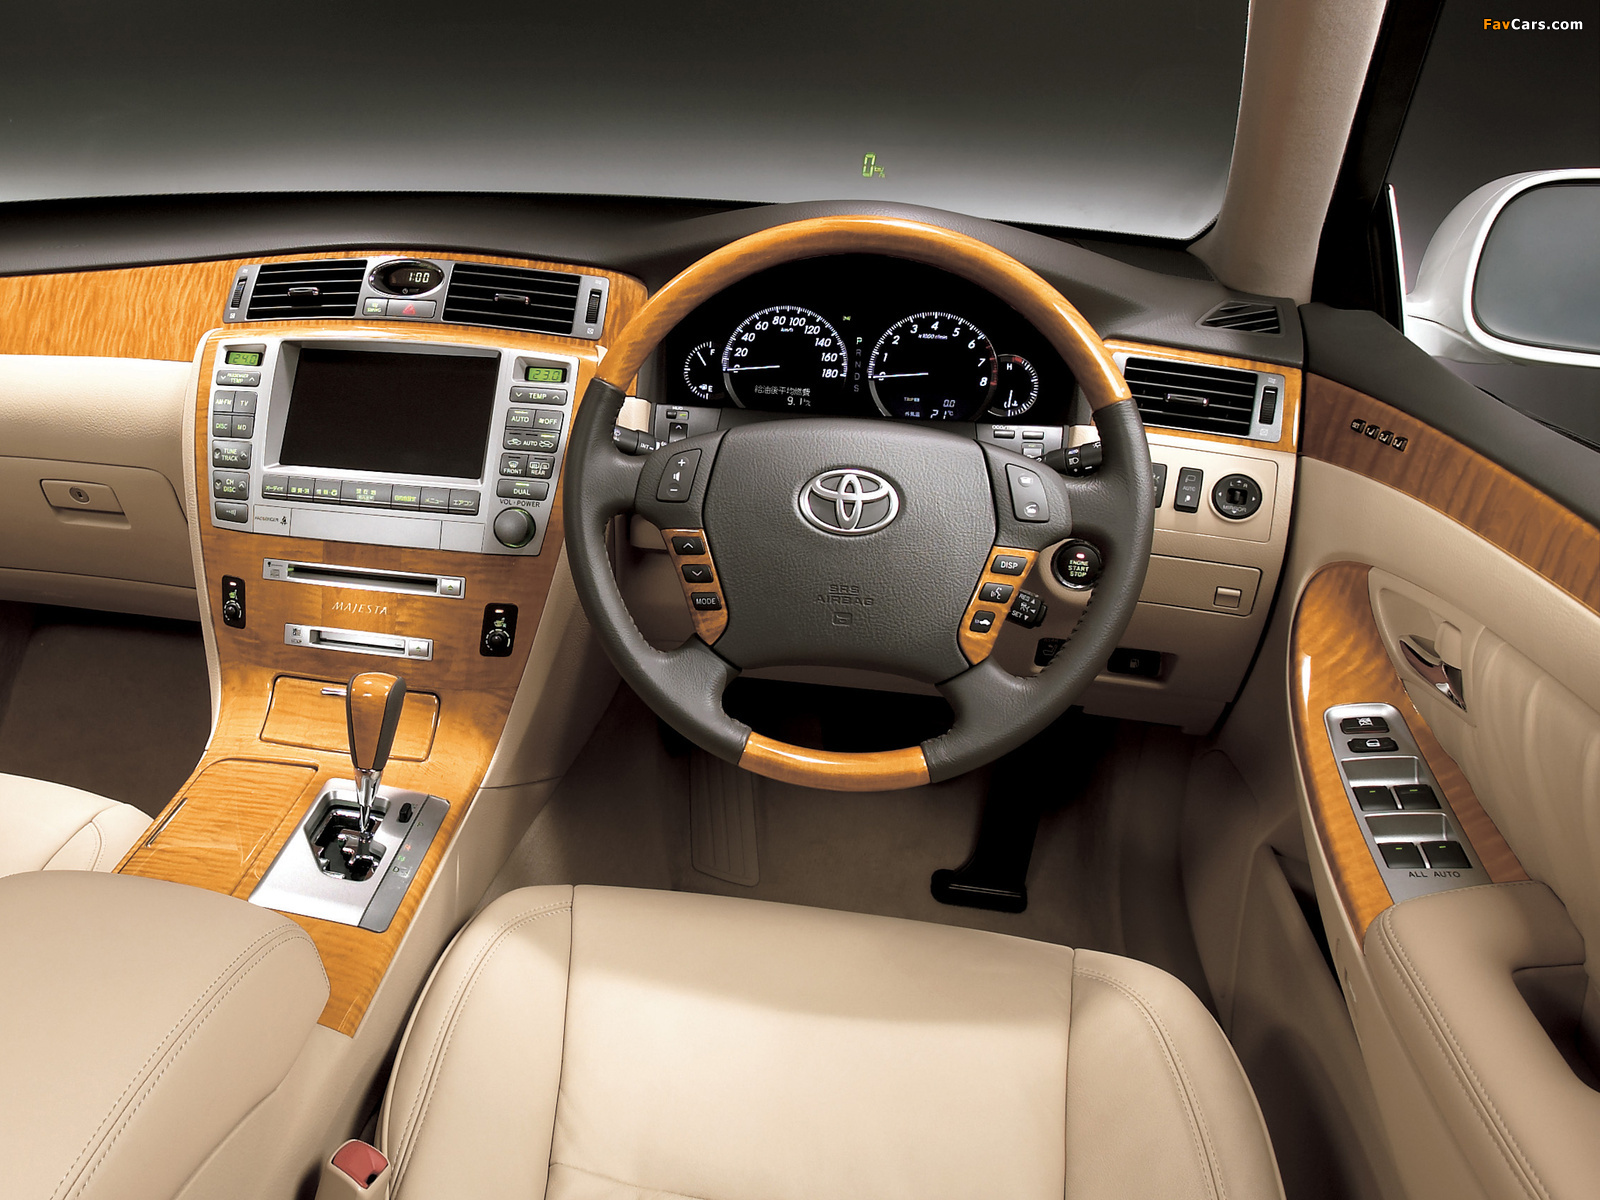 Images Of Toyota Crown Majesta S180 2006 09 1600x1200